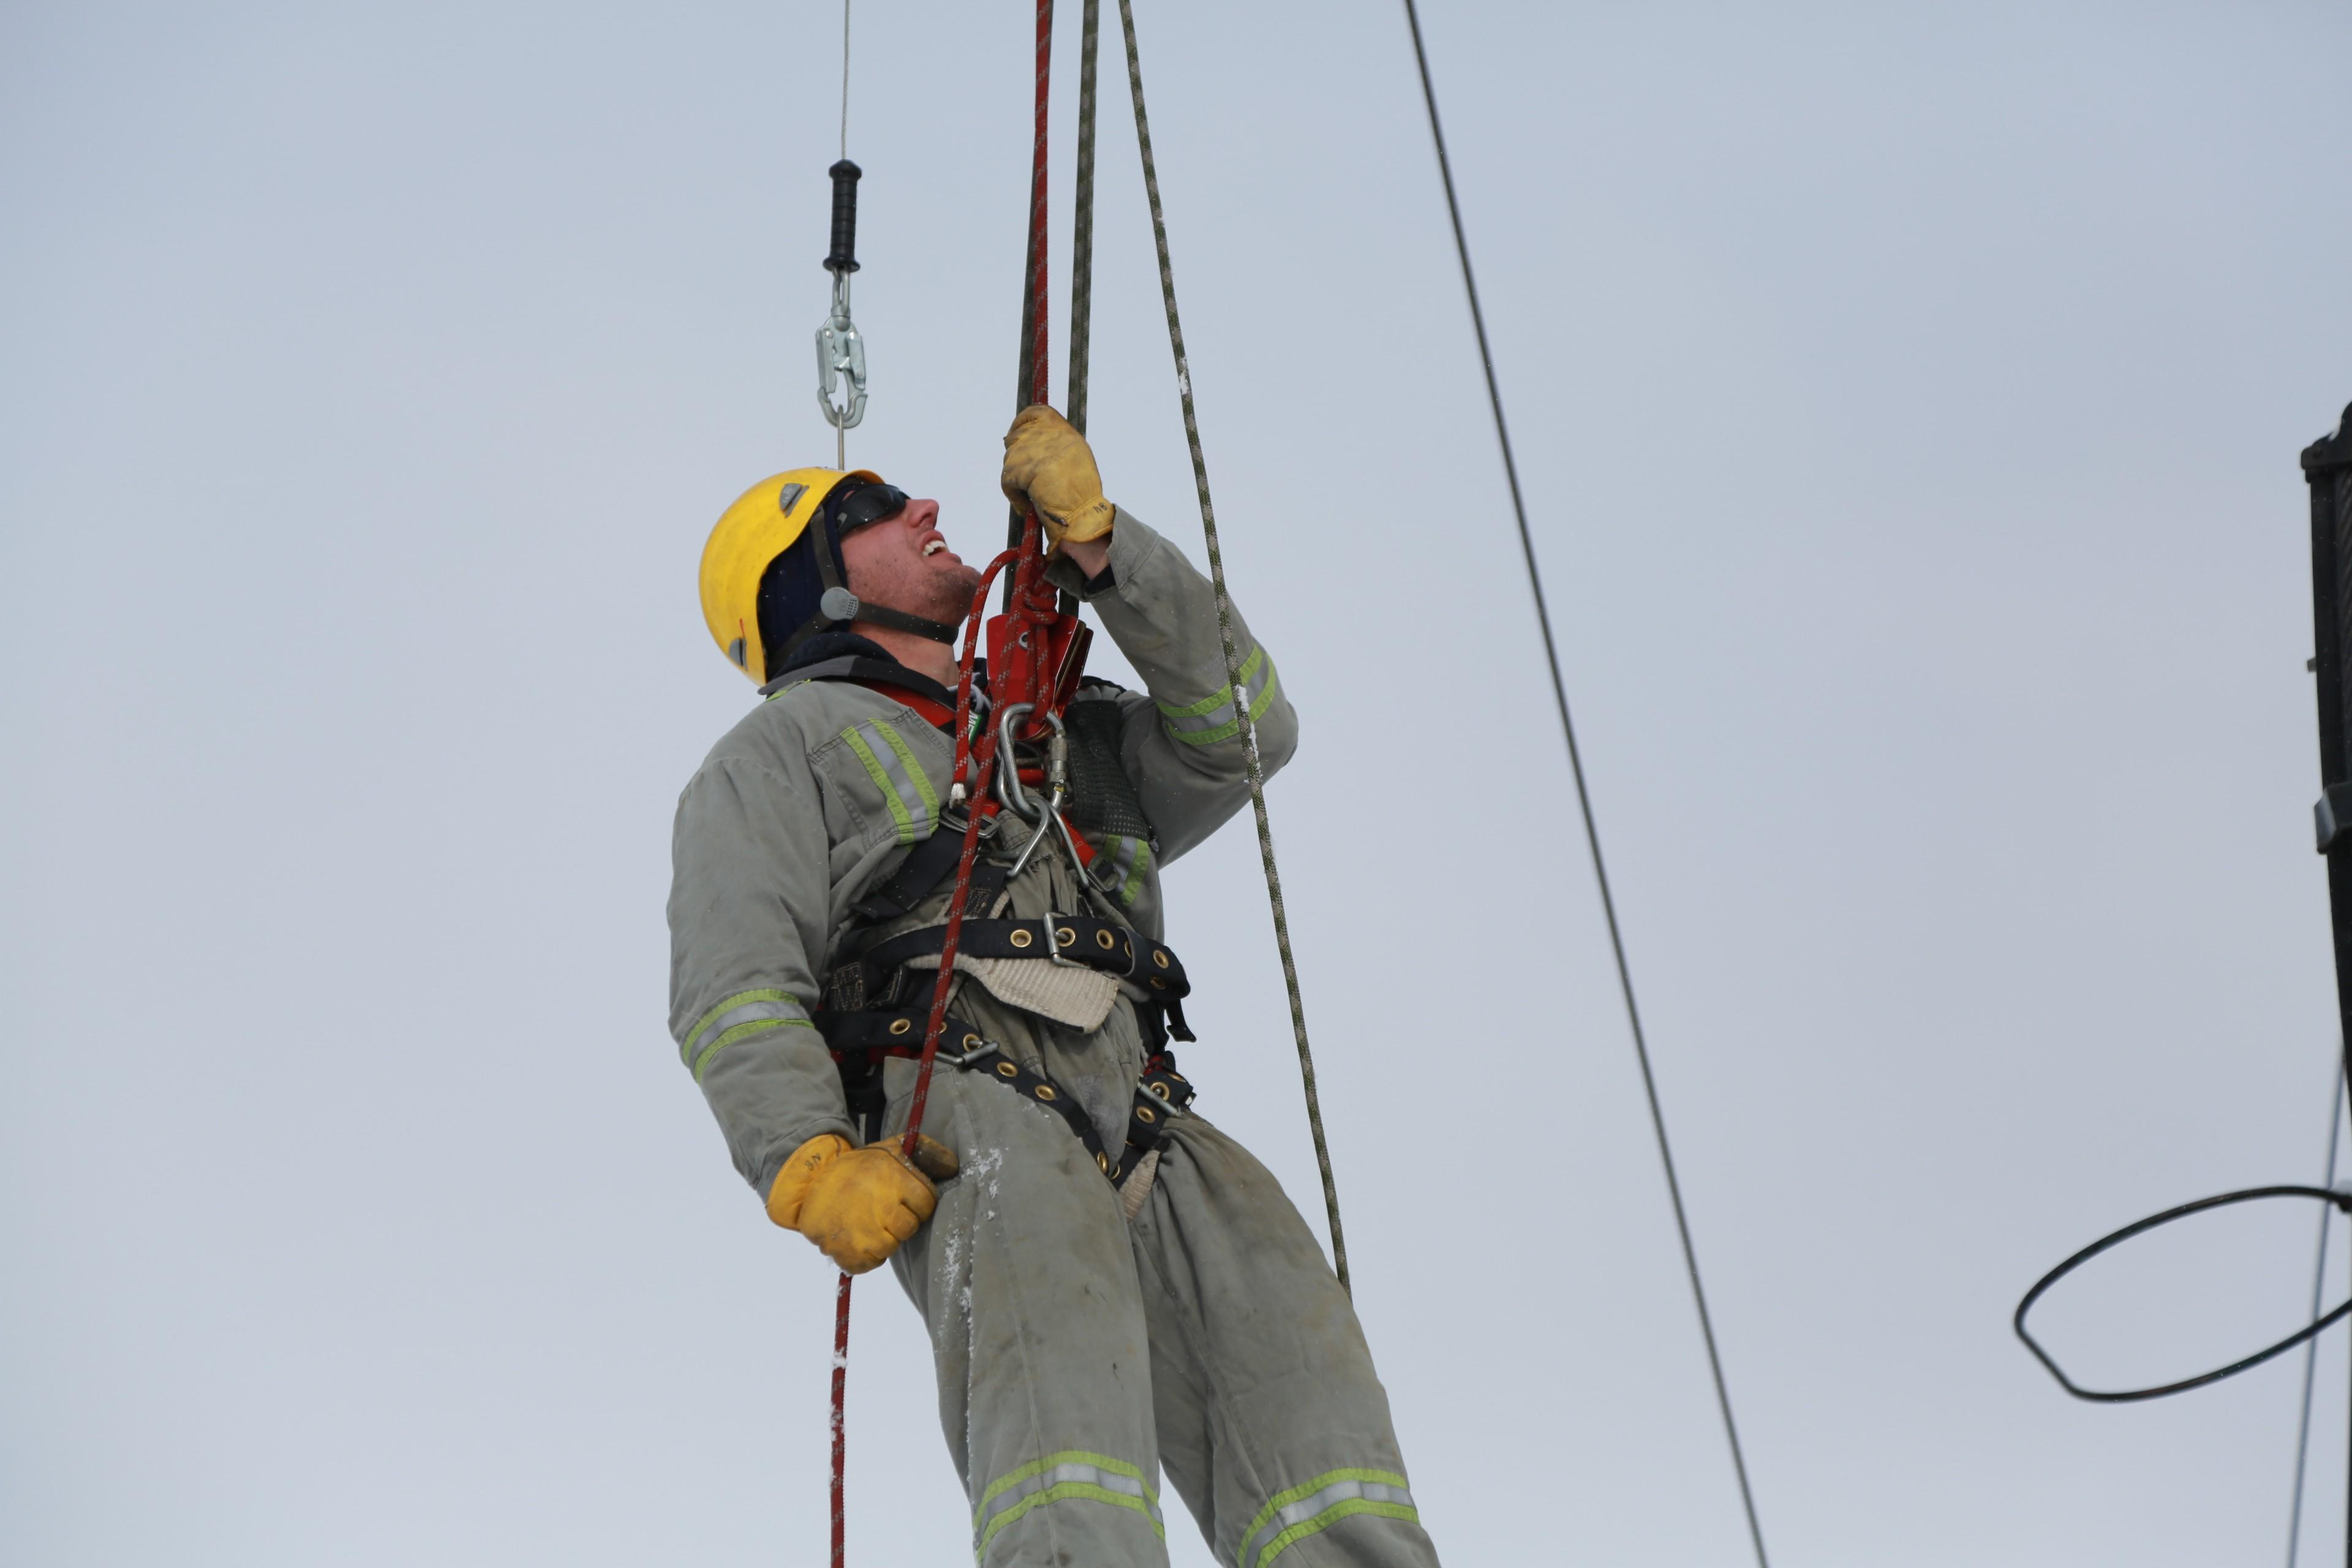 Why the Enform Rig Work Fall Protection Safety Course is Important for those Working in the Oil and Gas Industry